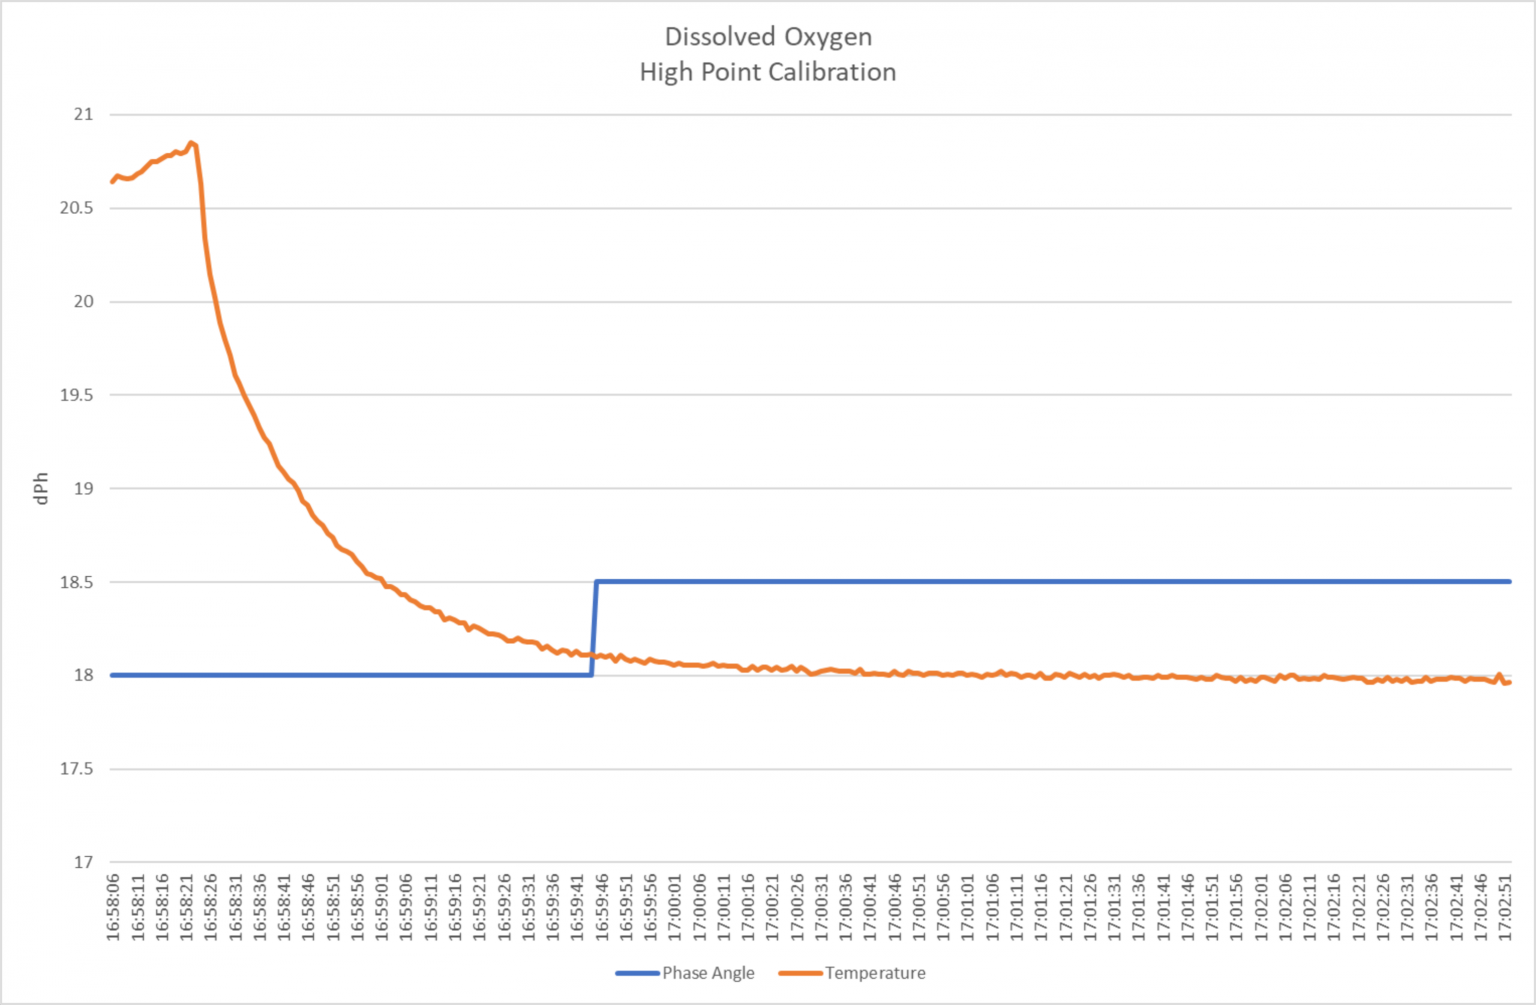 Dissolved oxygen high point calibration curve